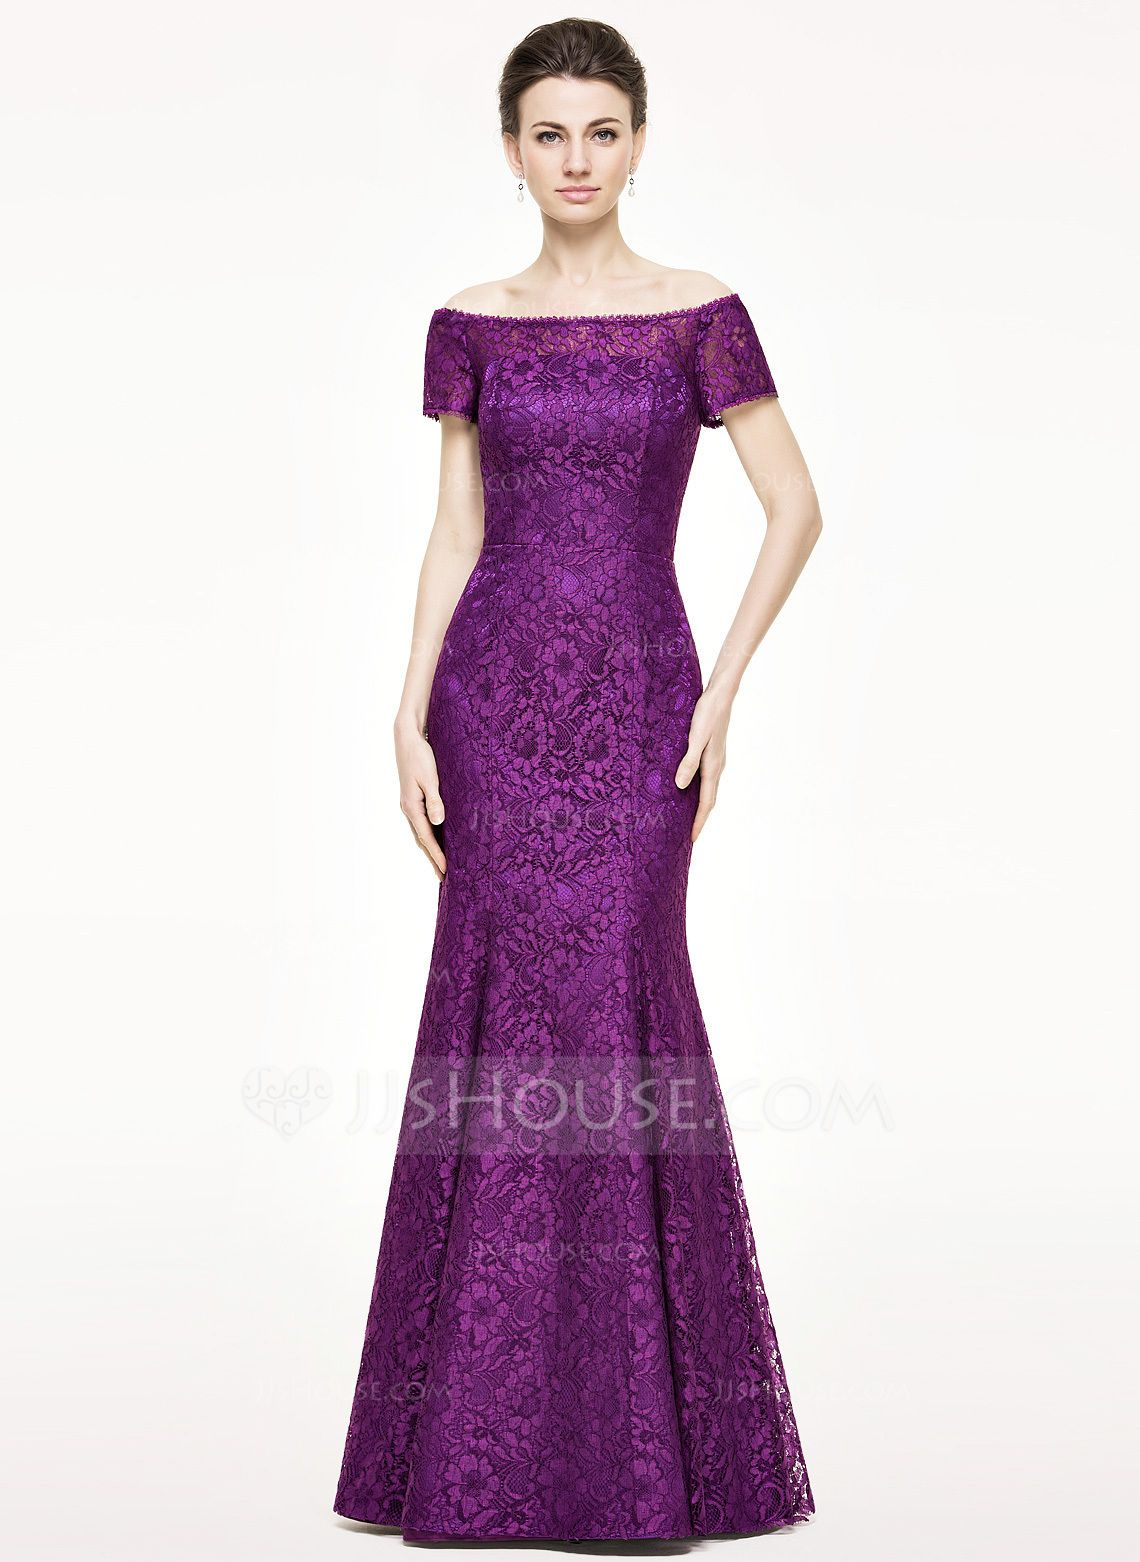 Gown dress for wedding party  TrumpetMermaid OfftheShoulder FloorLength Lace Mother of the